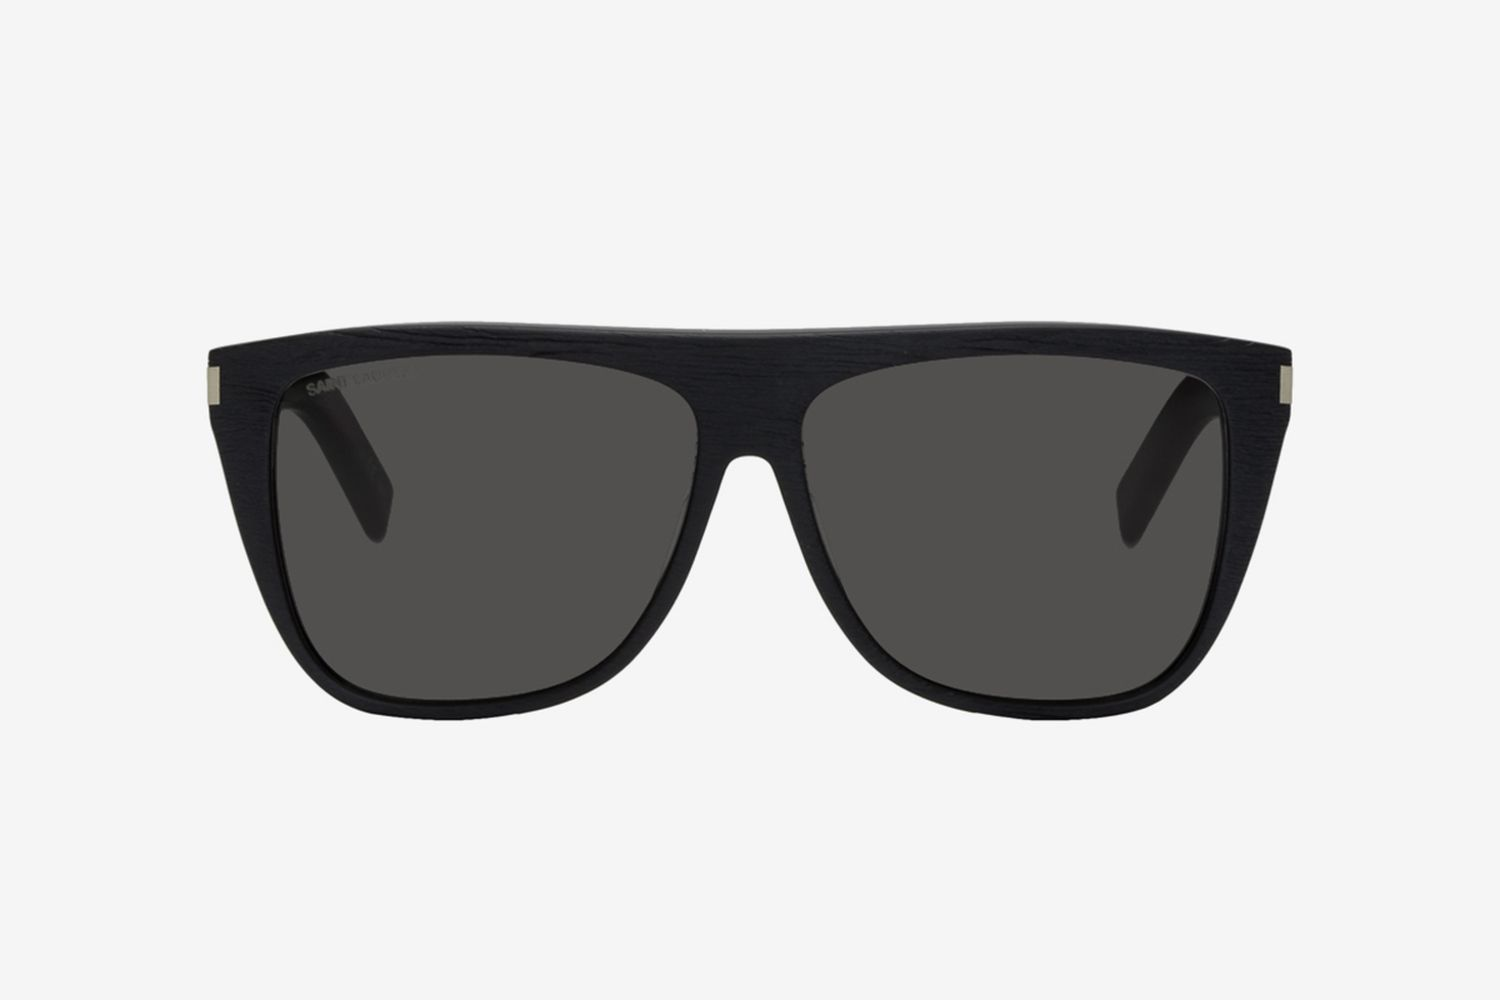 SL 1 017 Sunglasses